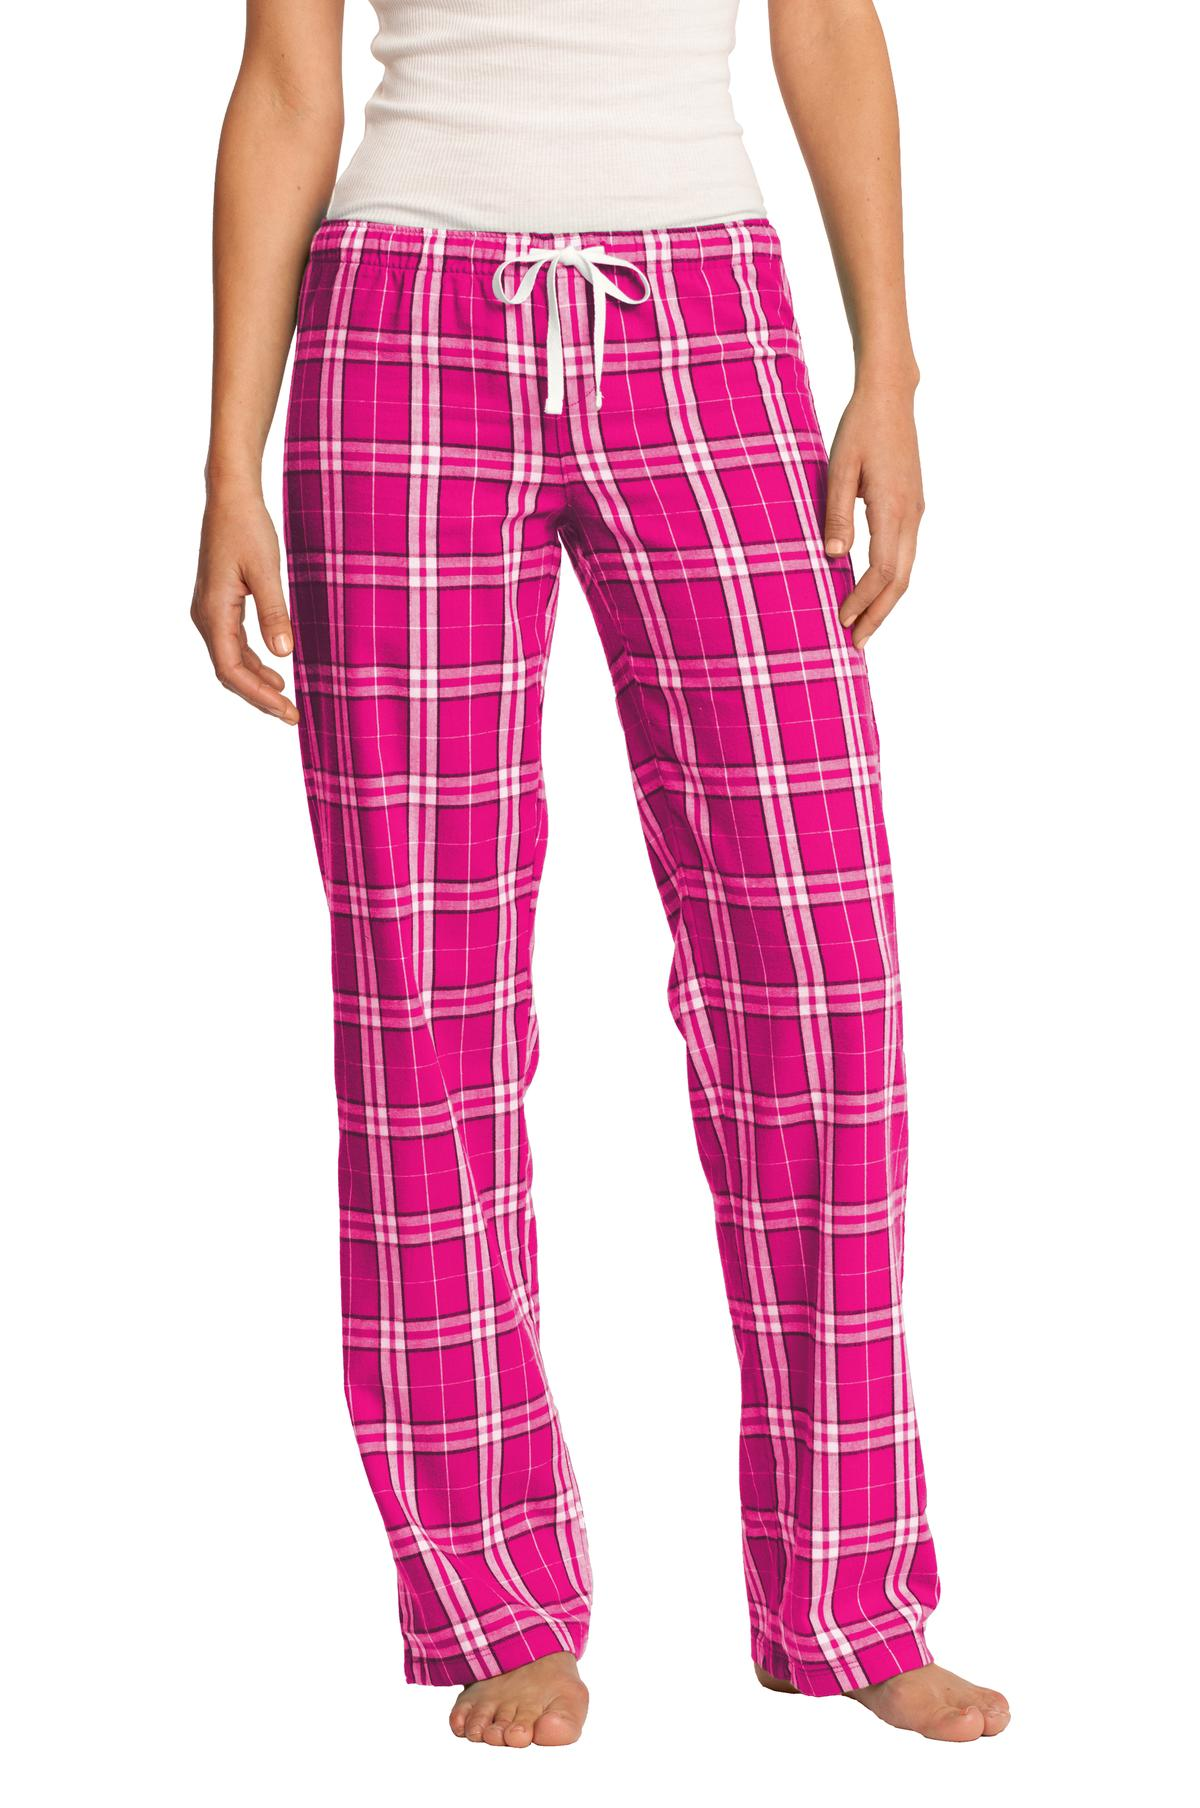 District ®  Women's Flannel Plaid Pant. DT2800 - Dark Fuchsia